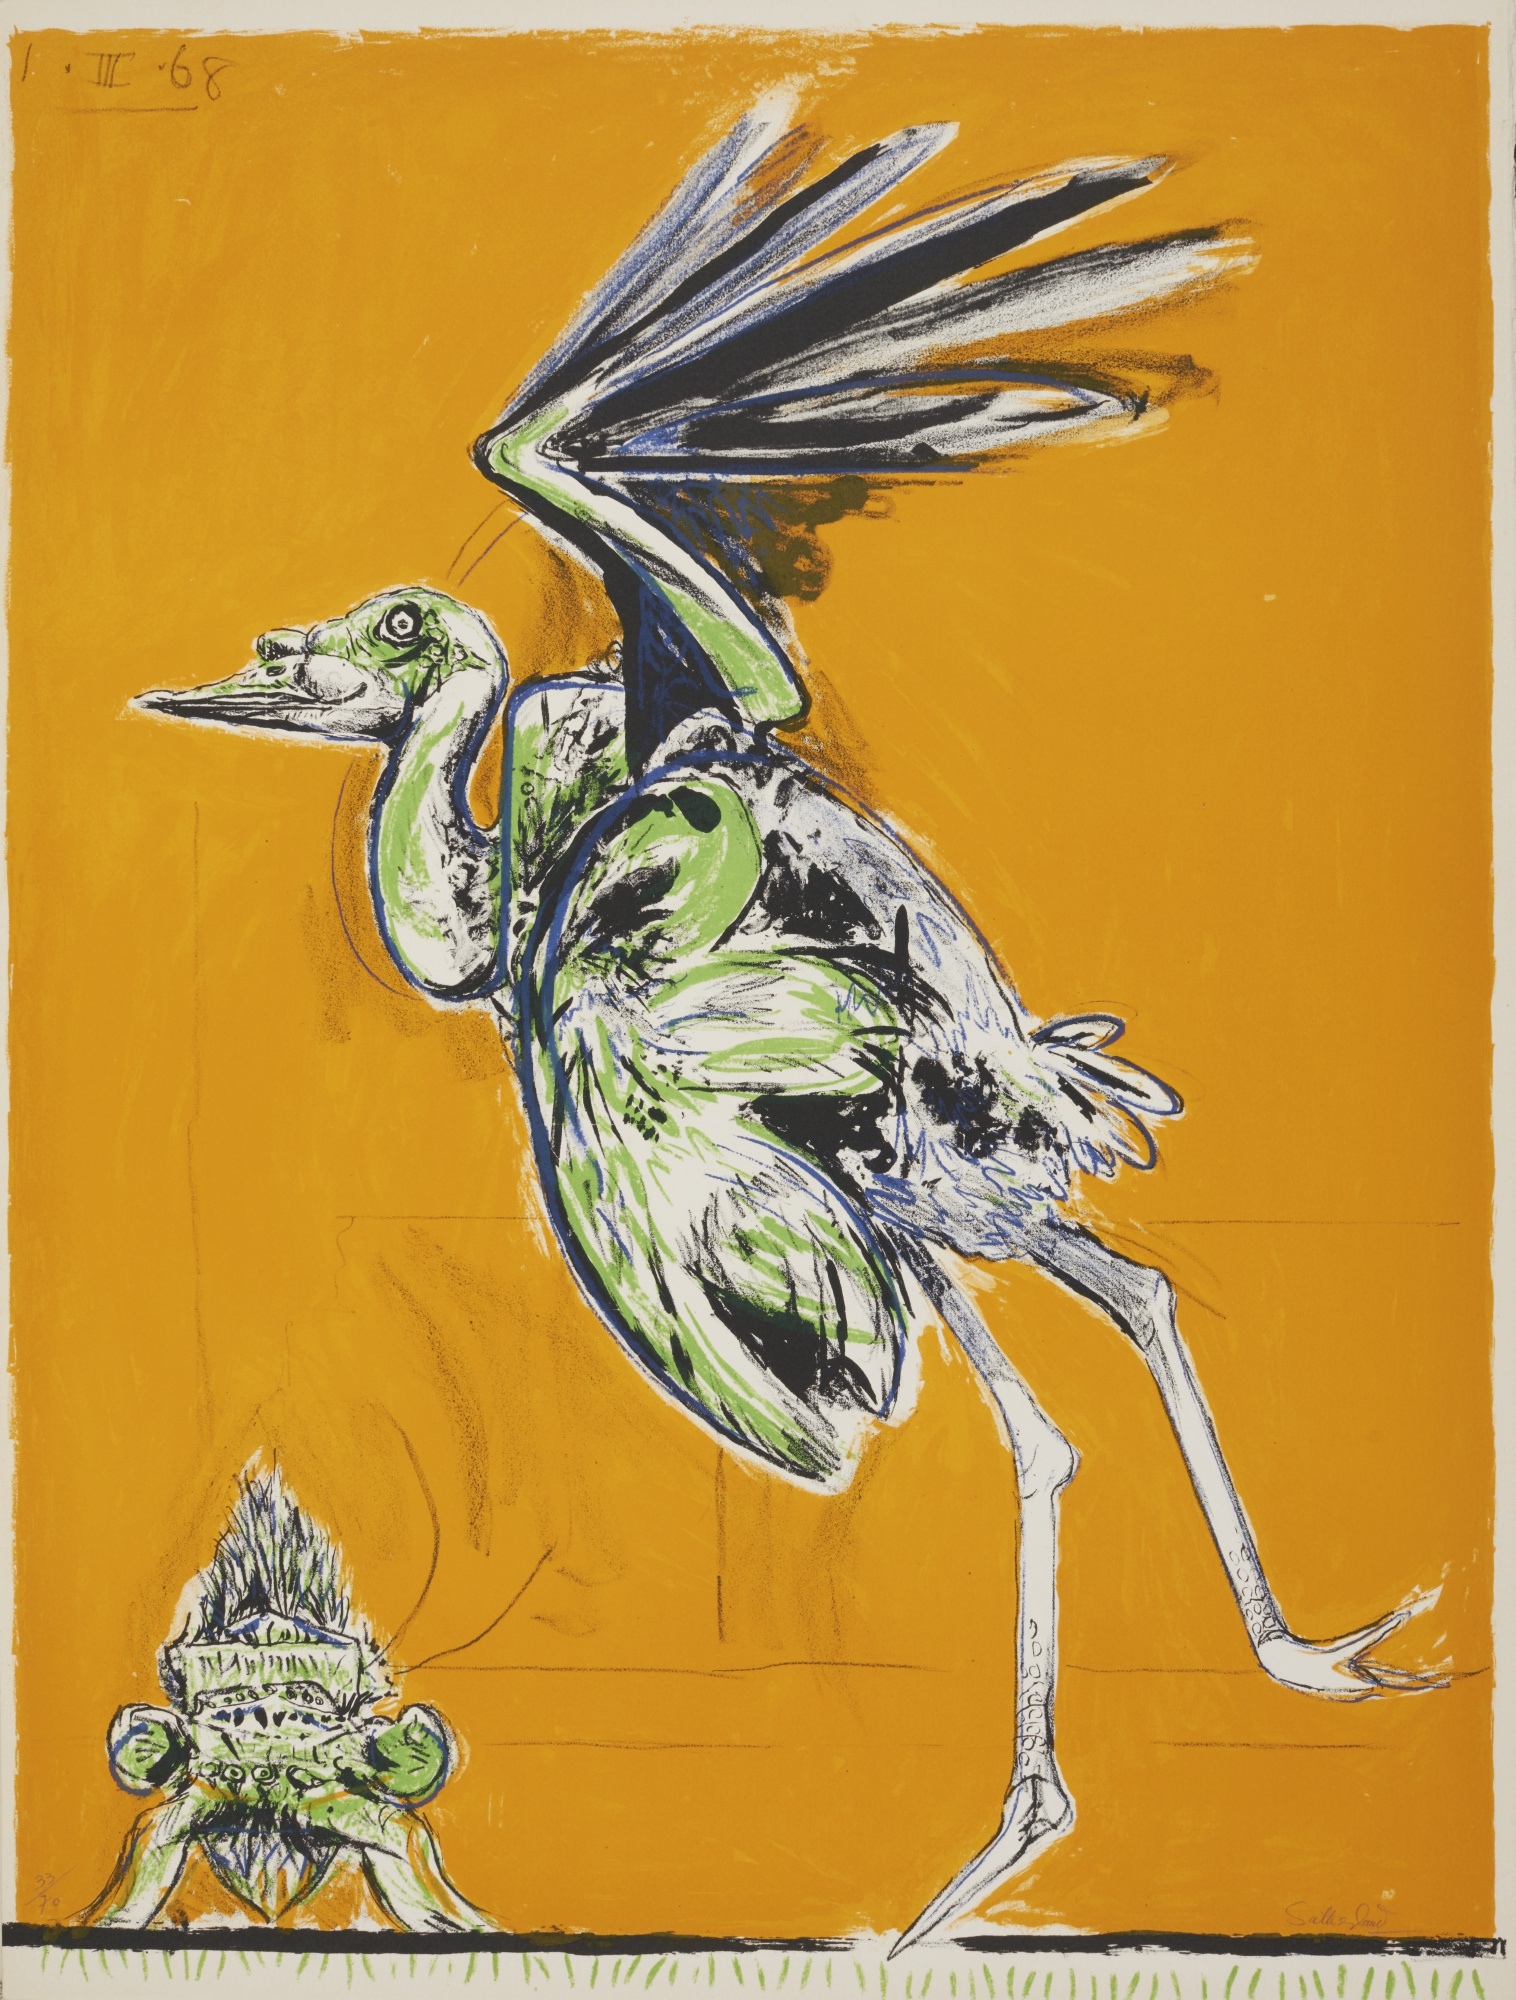 Graham Sutherland-A Bestiary And Some Correspondences (Tassi 81-85, 87-89, 91-106, 108-109)-1967